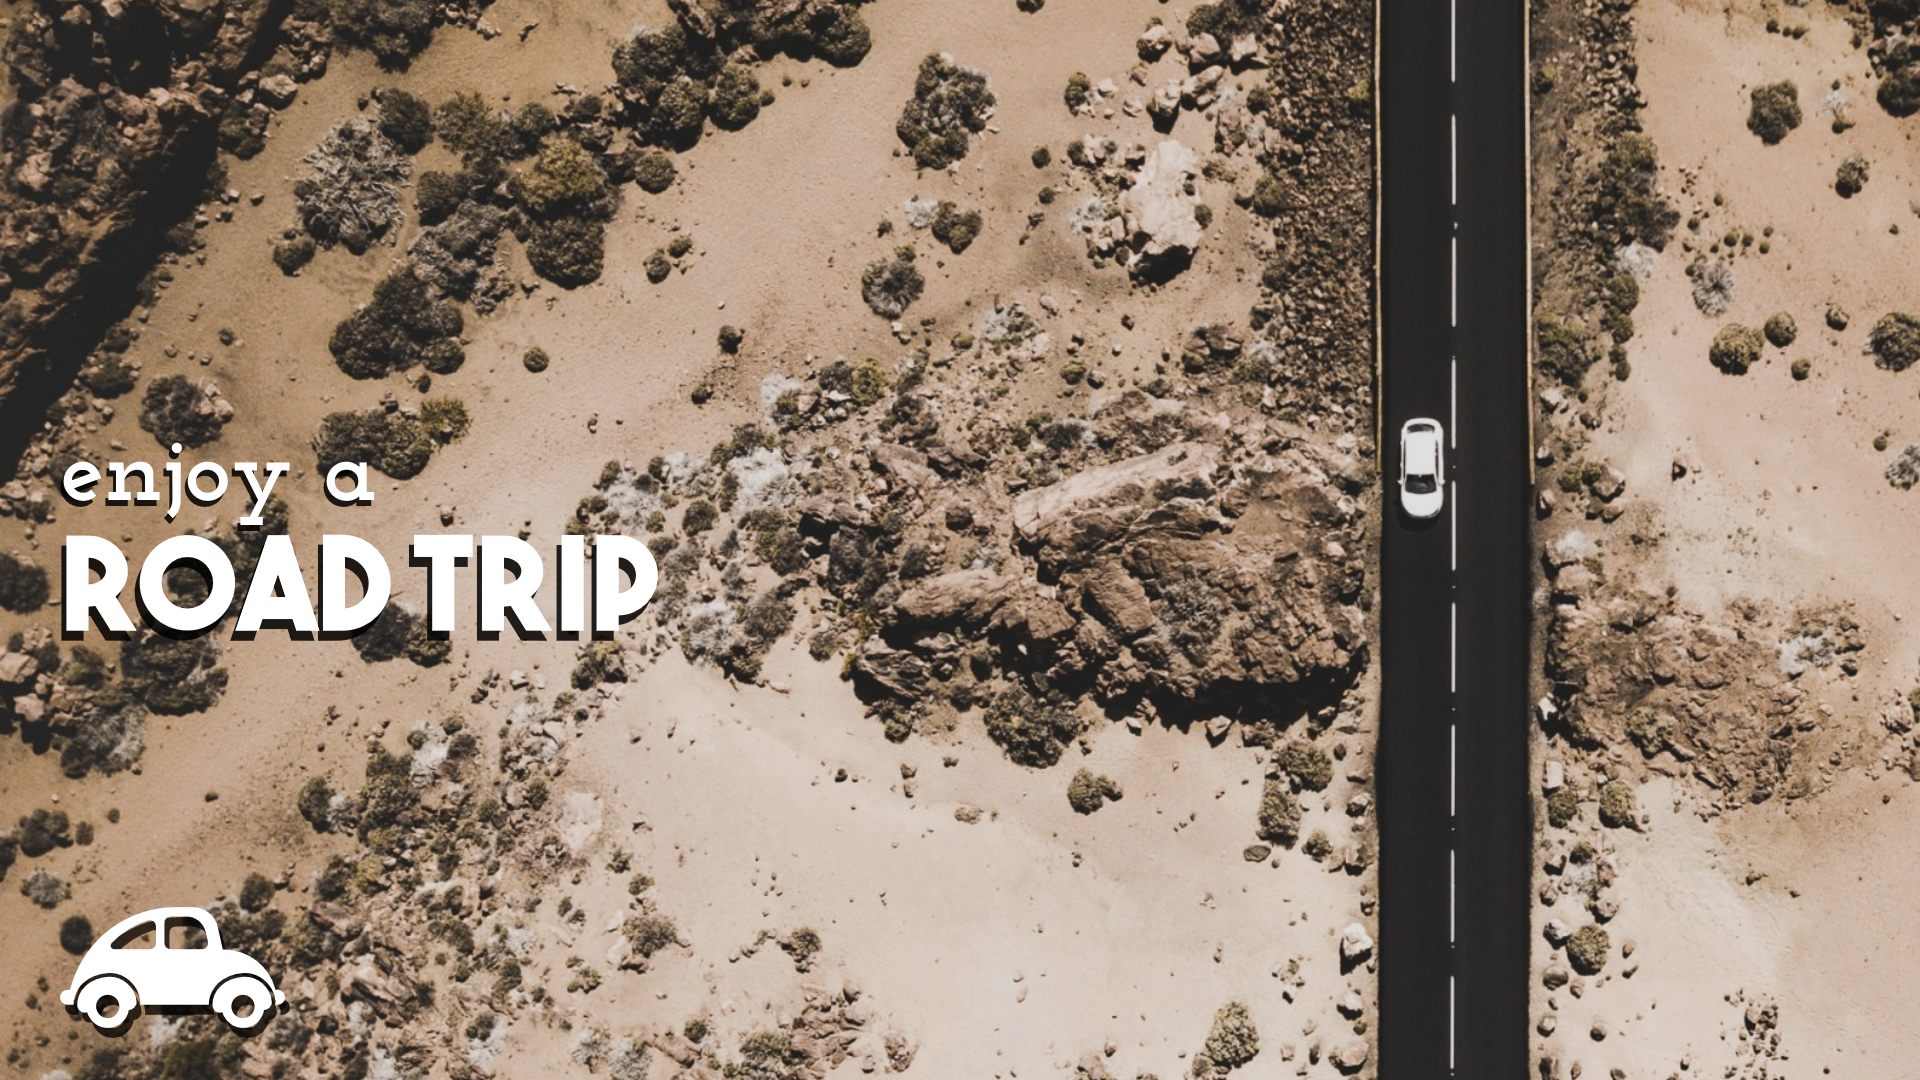 Enjoy a Road Trip #quote #poster Design  Template